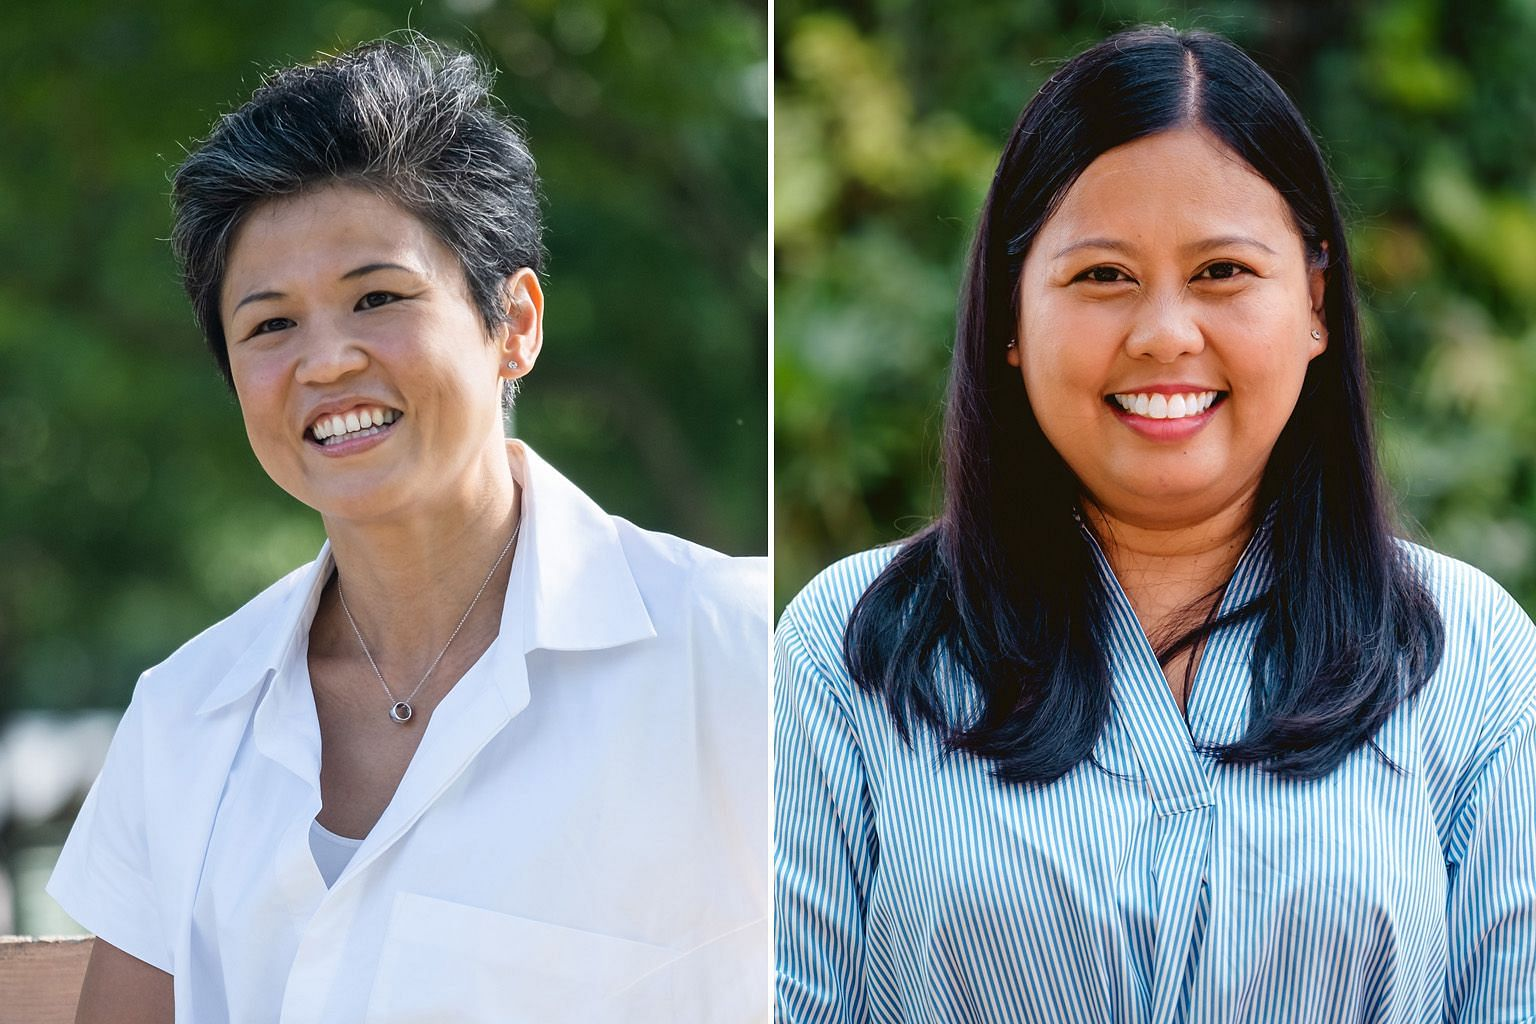 Ms Poh Li San (left) and Ms Mariam Jaafar will run as part of the PAP's team in Sembawang GRC, led by Education Minister Ong Ye Kung.